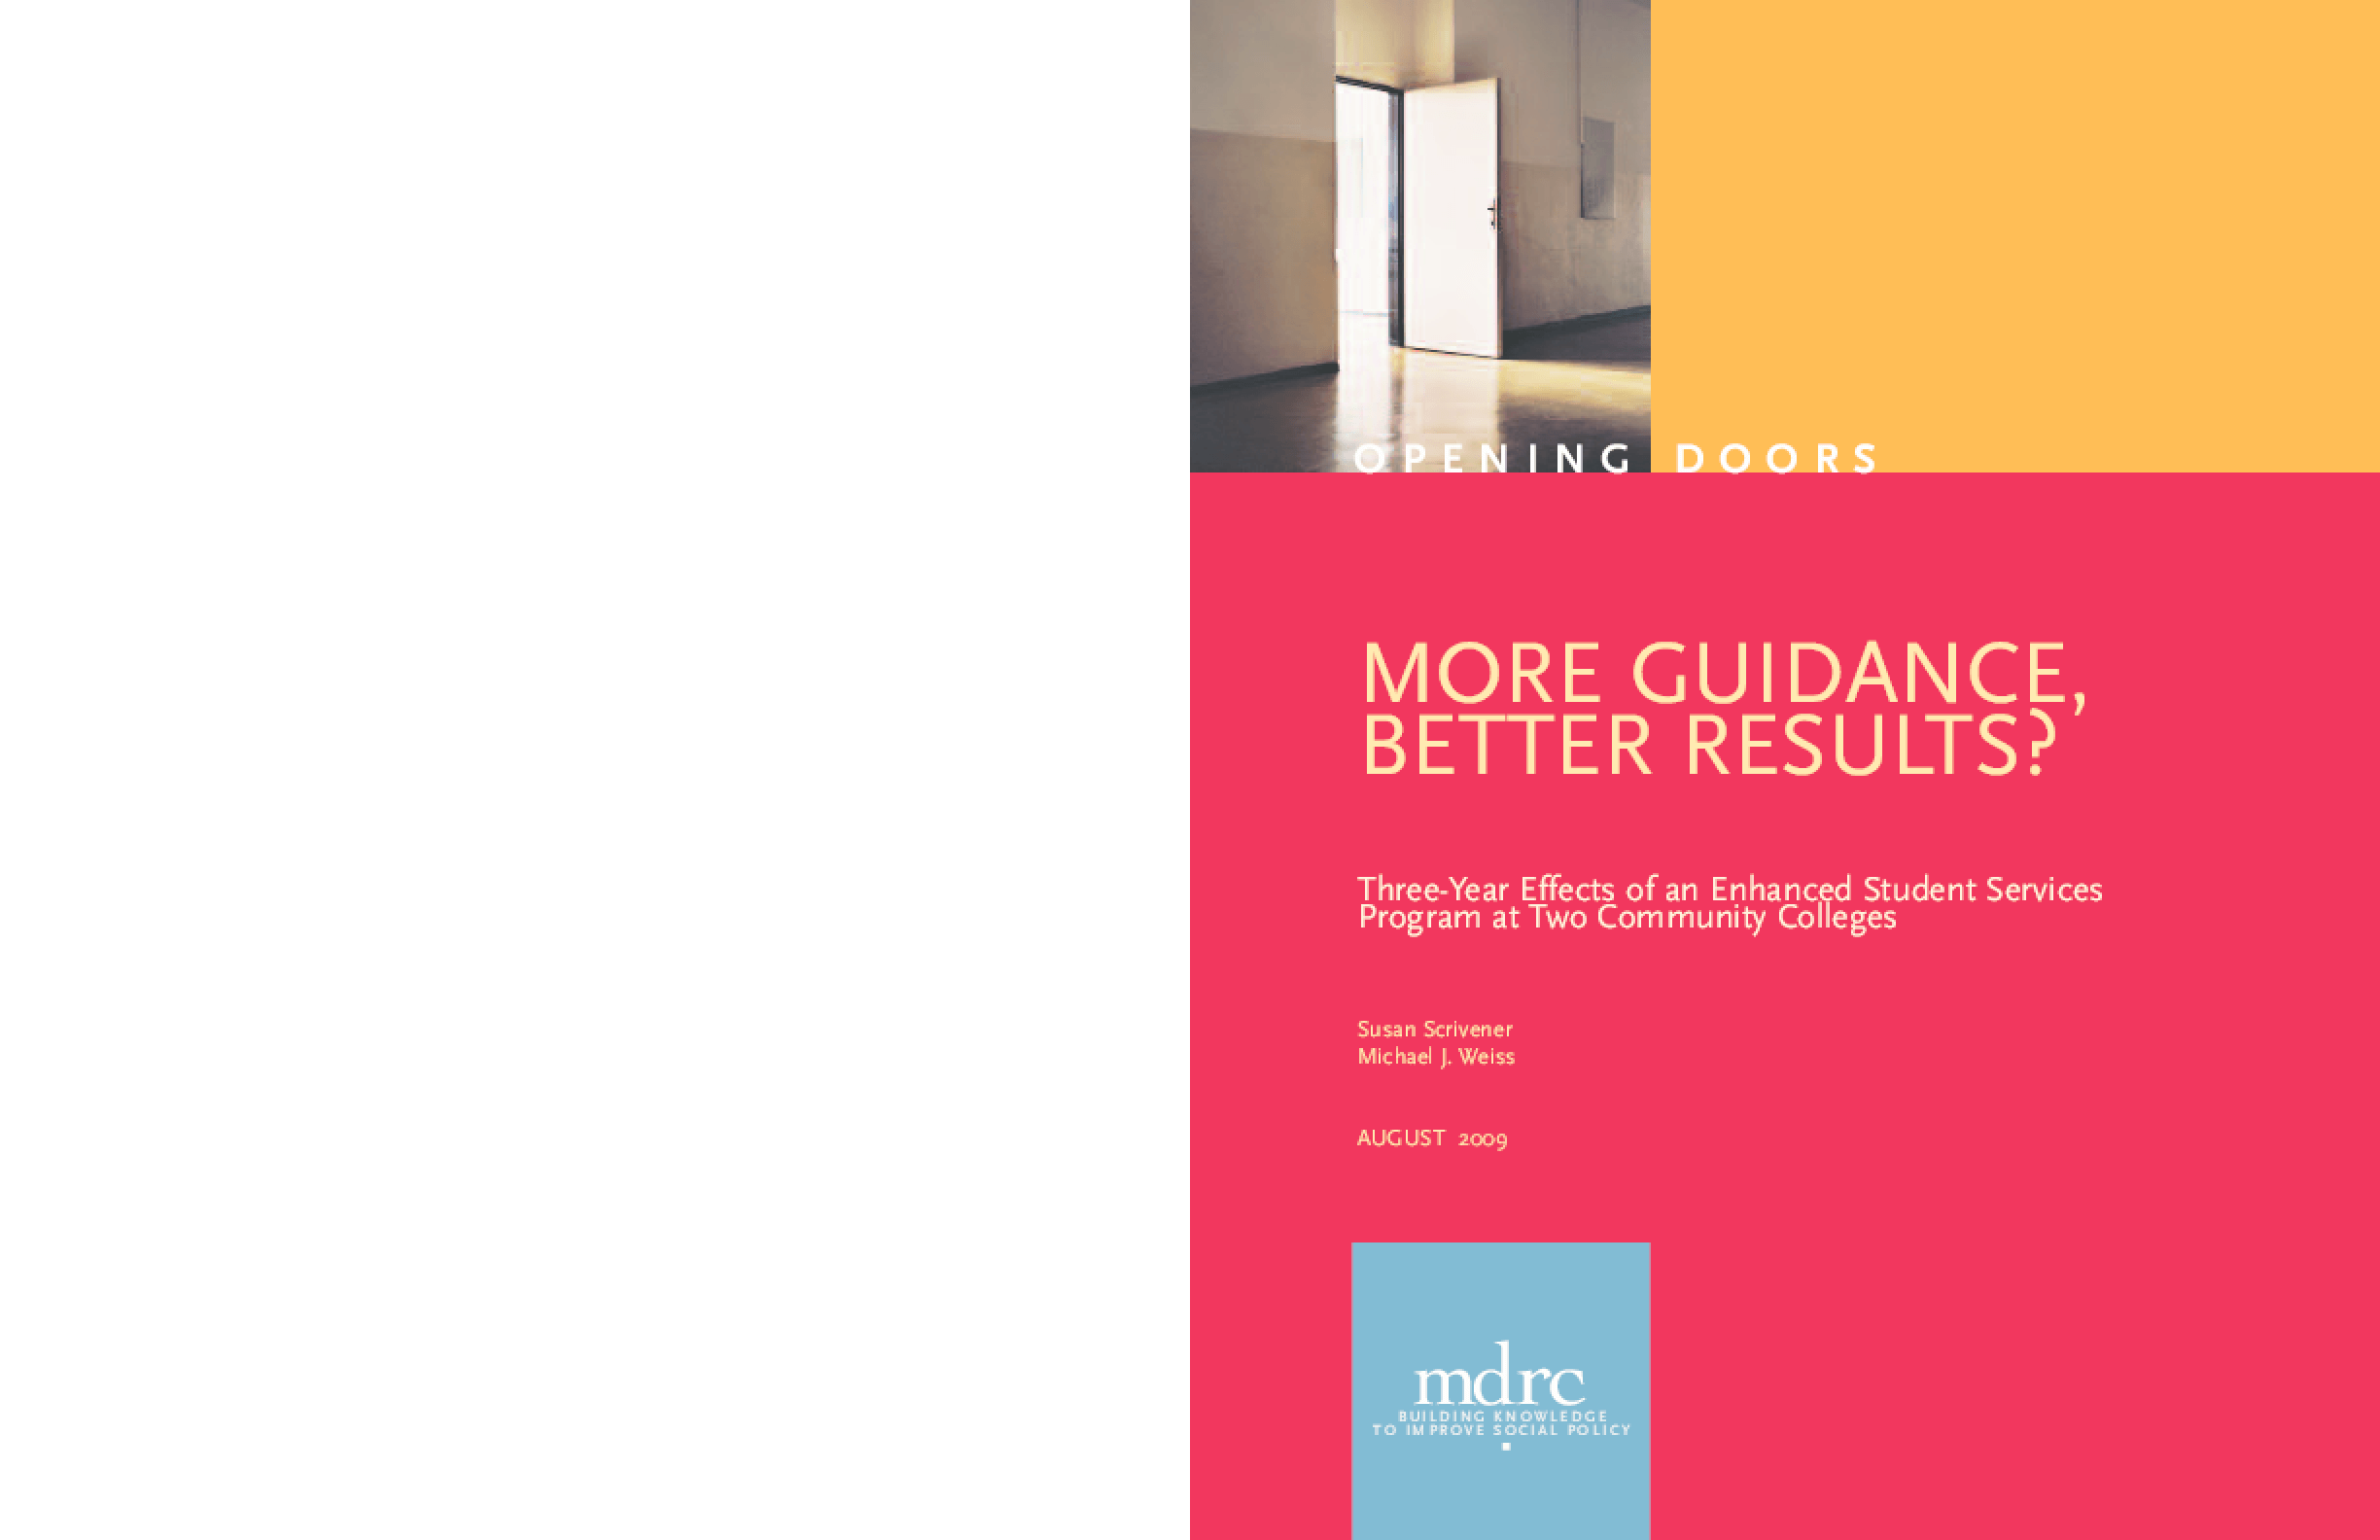 More Guidance, Better Results? Three-Year Effects of an Enhanced Student Services Program at Two Community Colleges